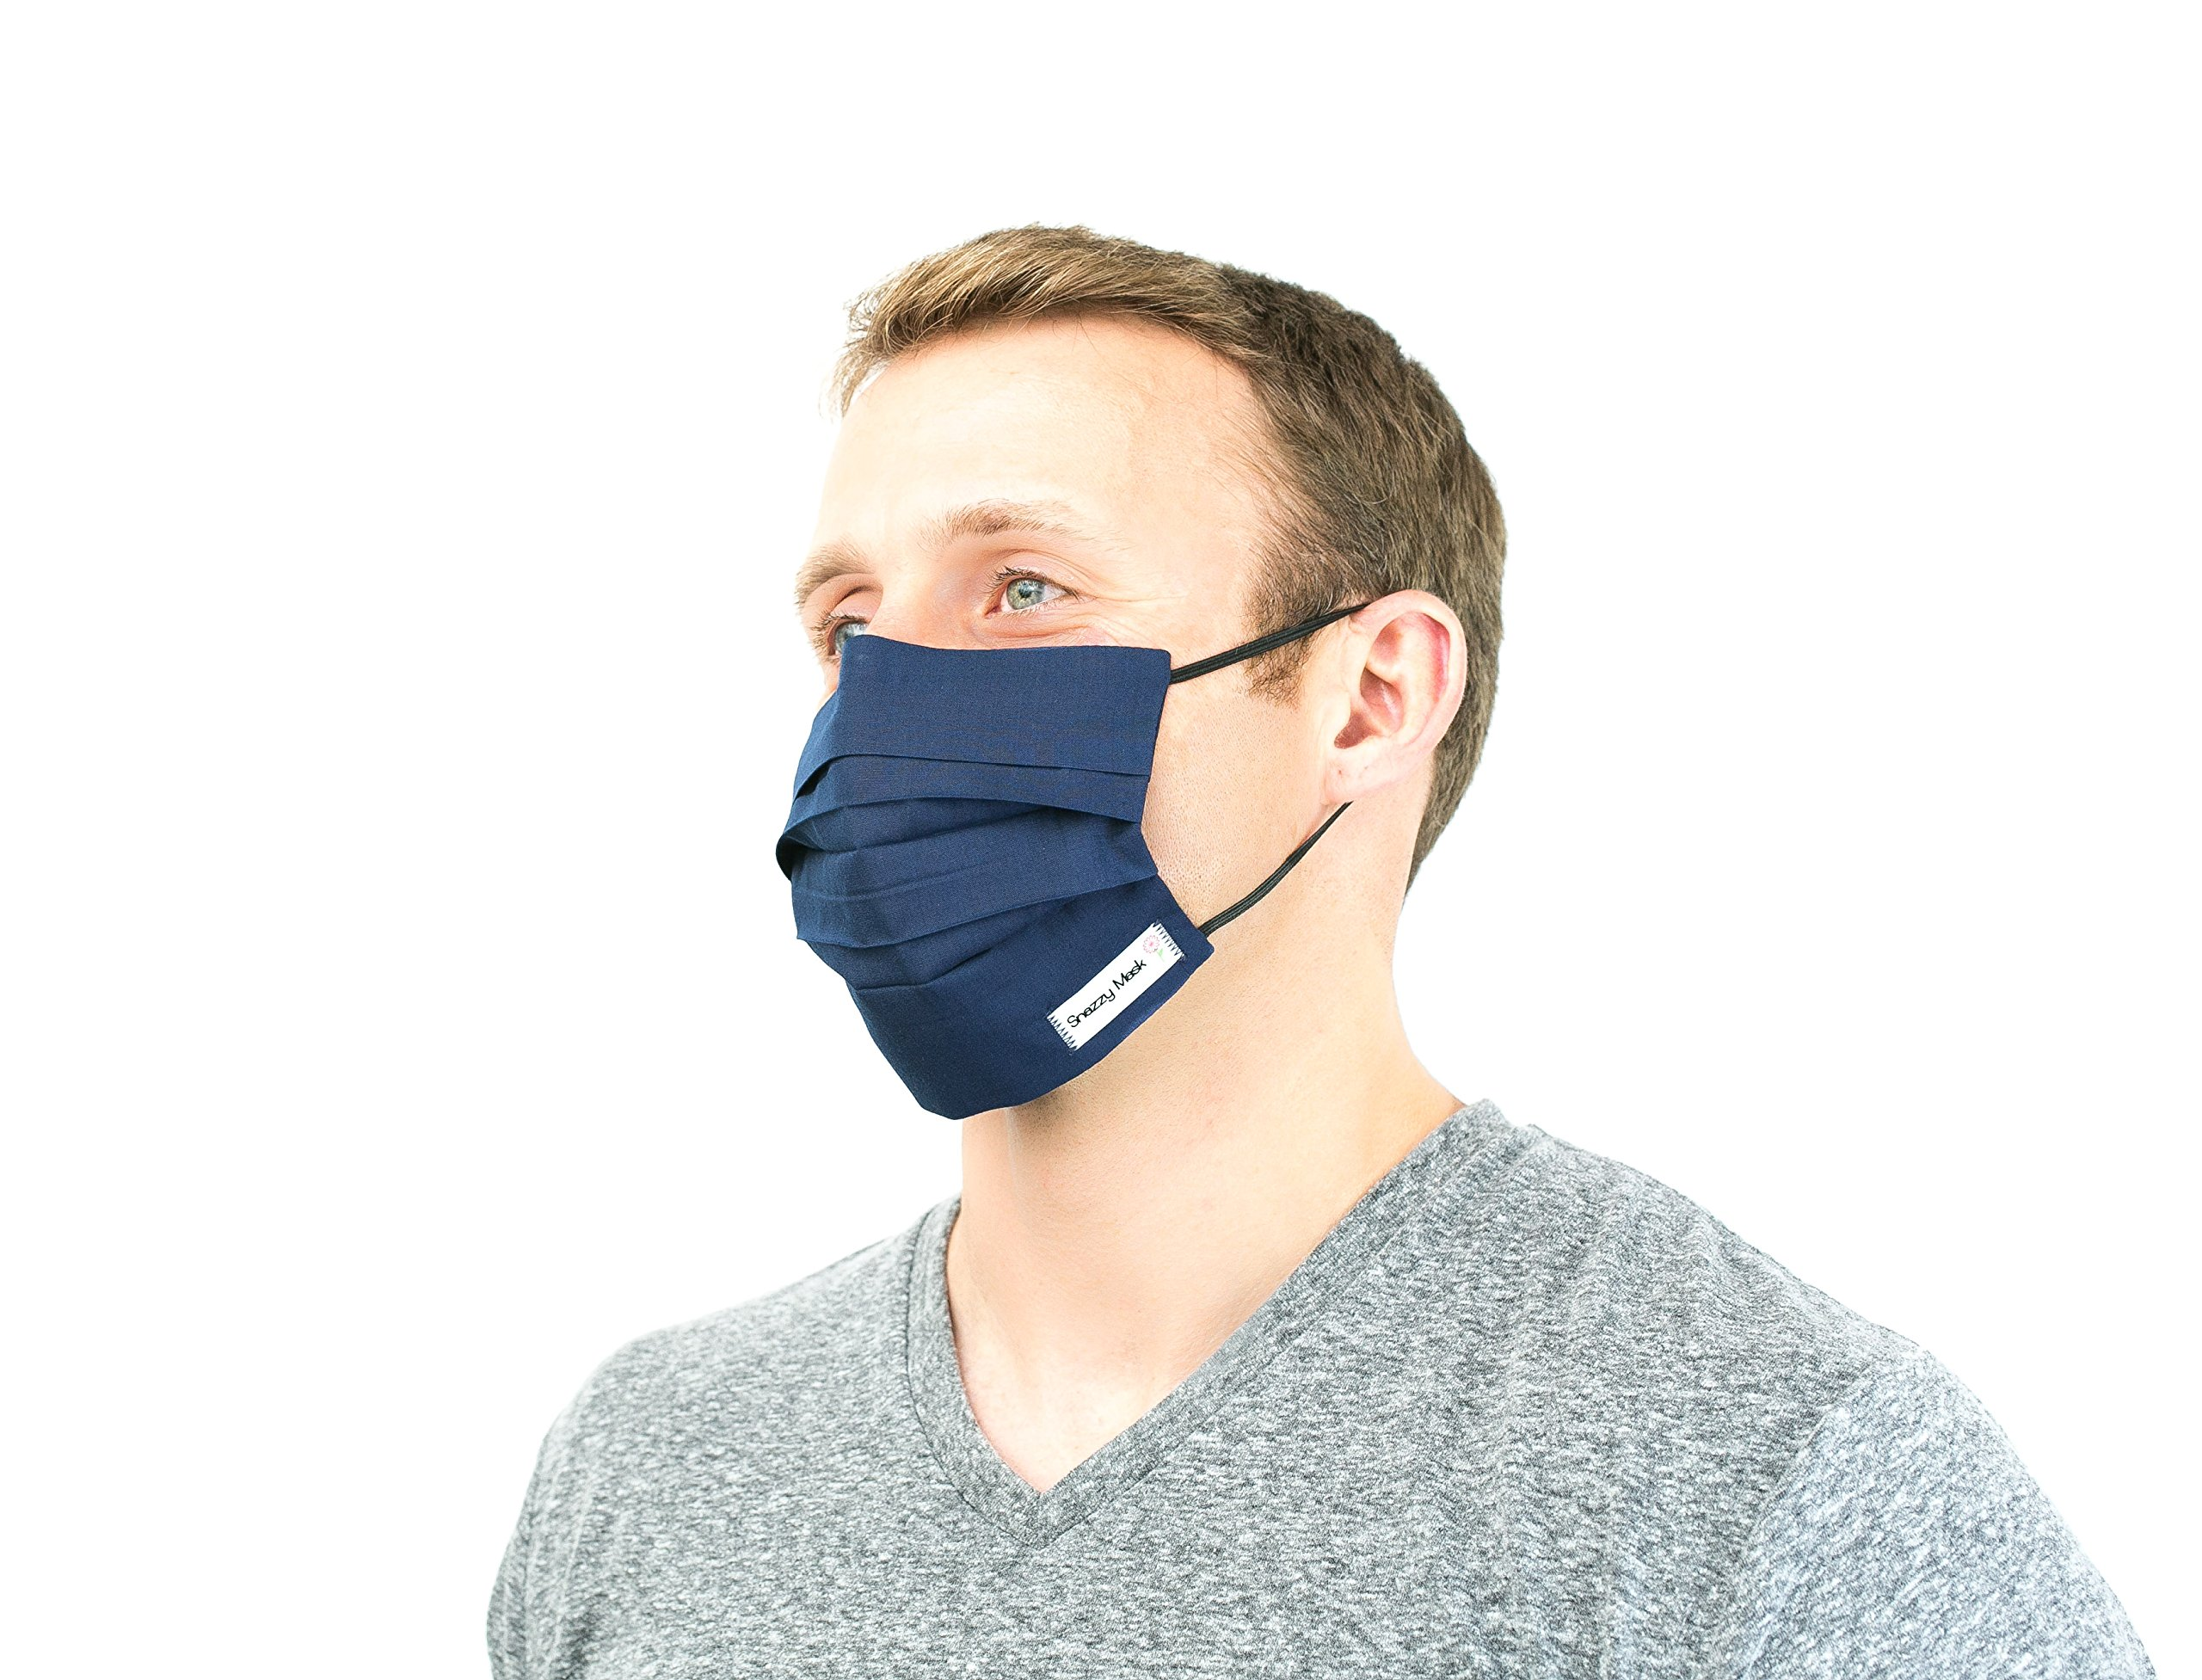 Masks - Mask Face Men's Washable Surgical Reusable Sanitary Cotton